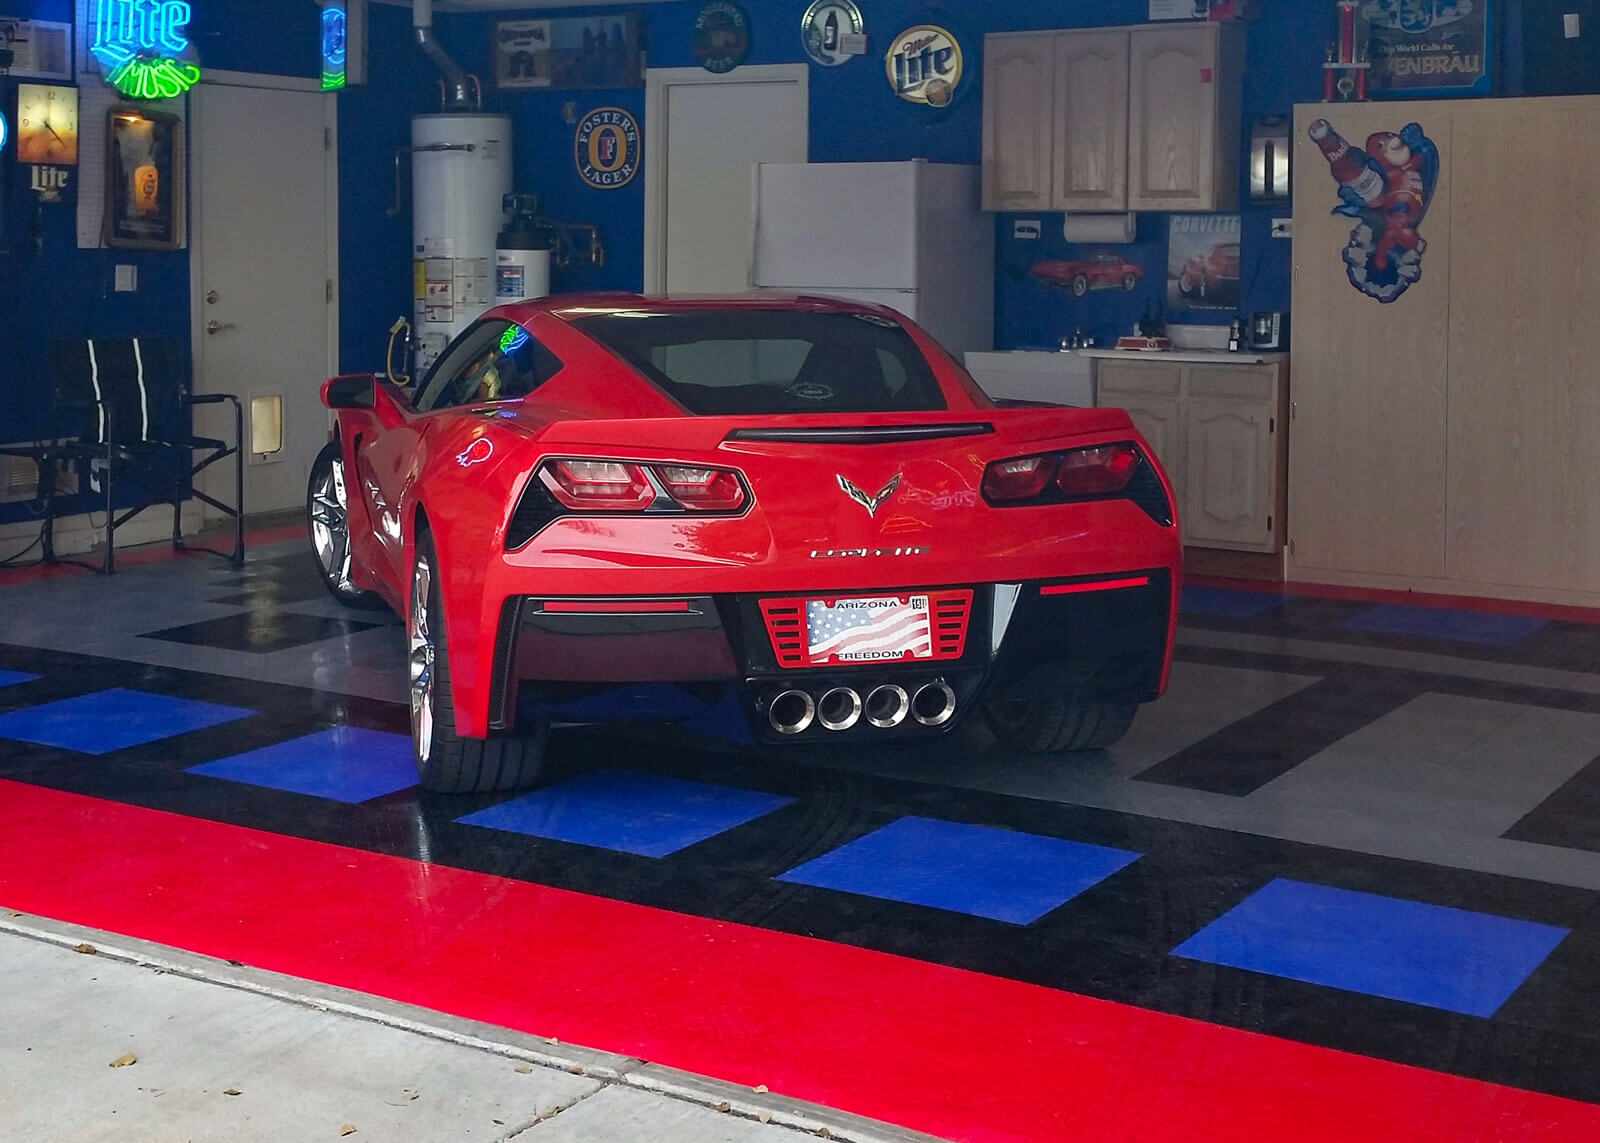 Corvette in a garage with RaceDeck flooring